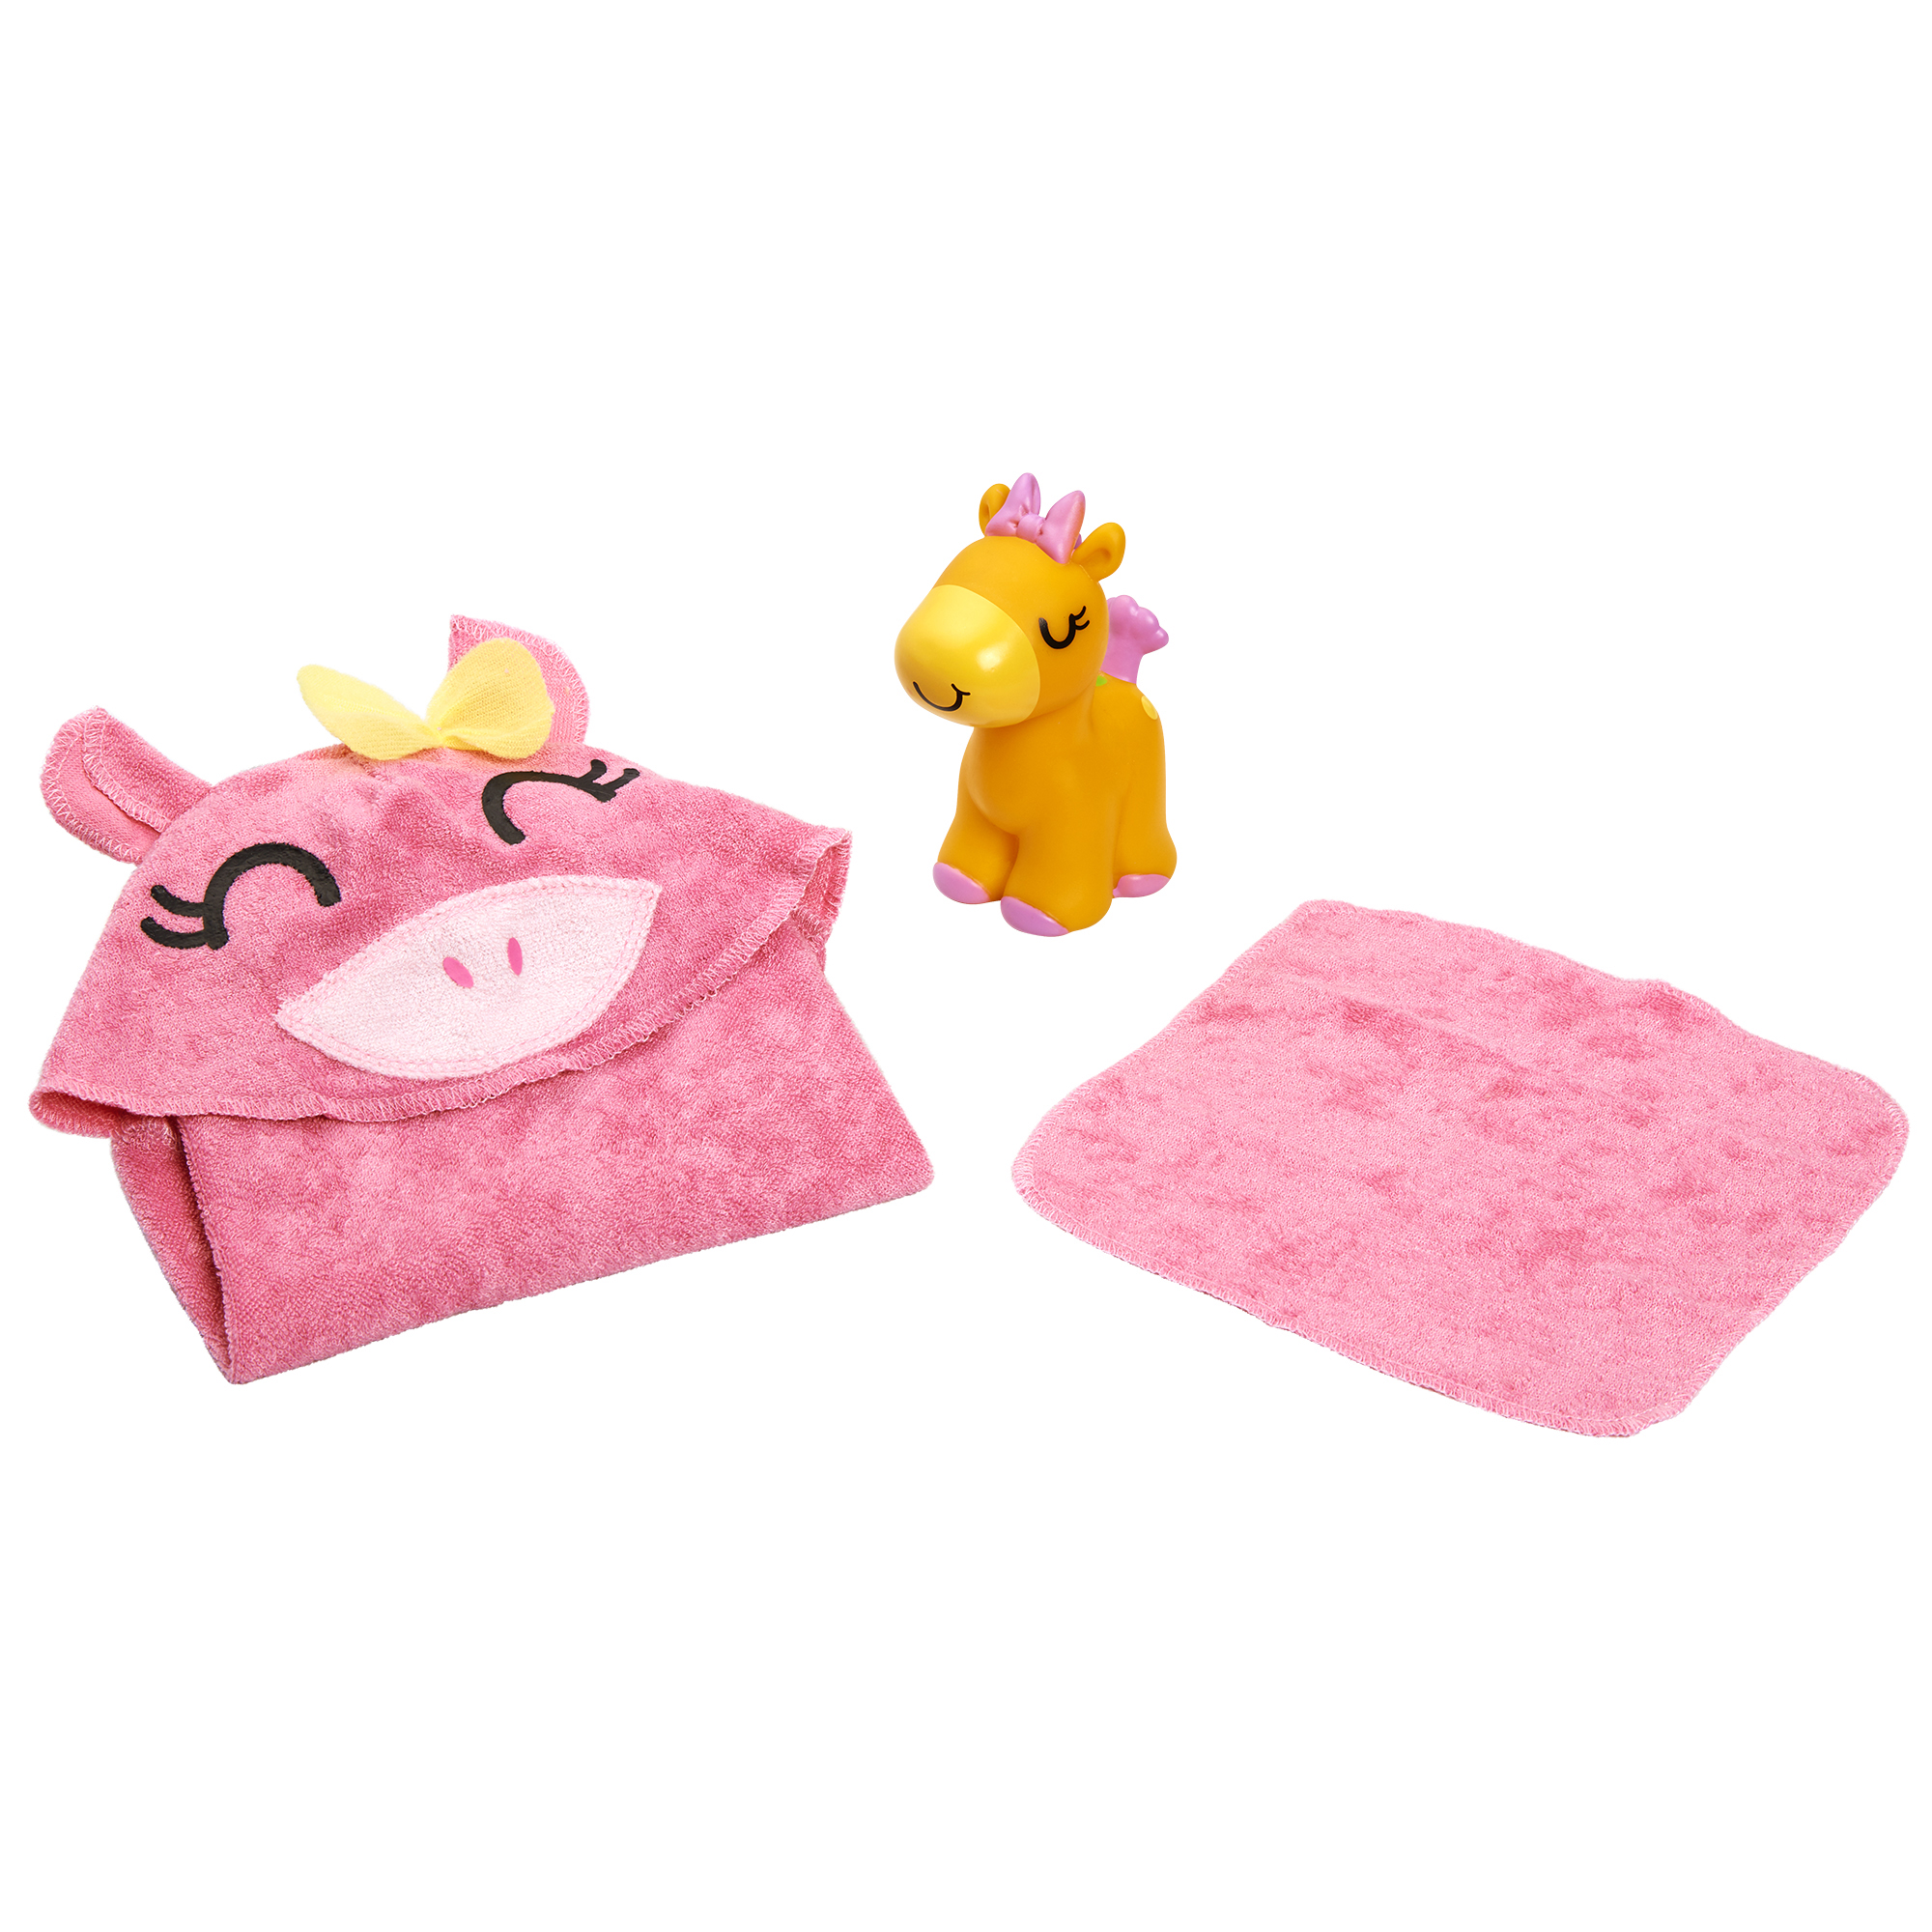 Perfectly Cute Baby Doll Bath Time Set